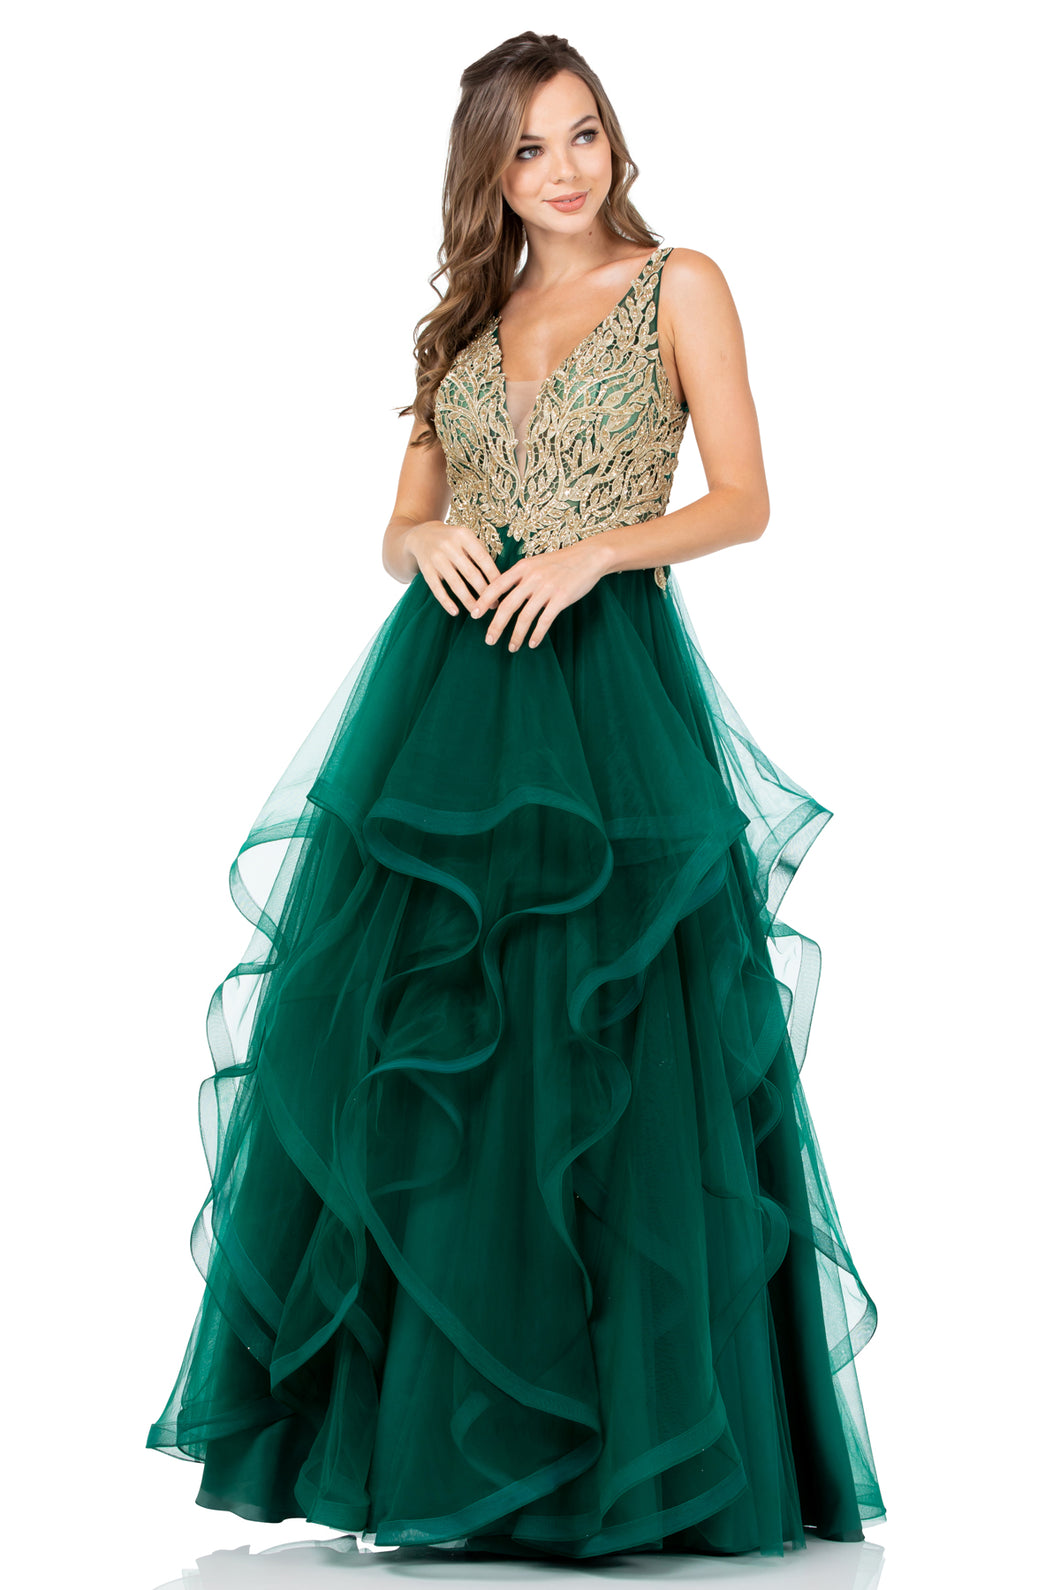 Diggz Prom BC PS2825 - A-Line Ruffle Ball Gown with Deep V-Neckline, Gold Applique and Open Back - Diggz Prom